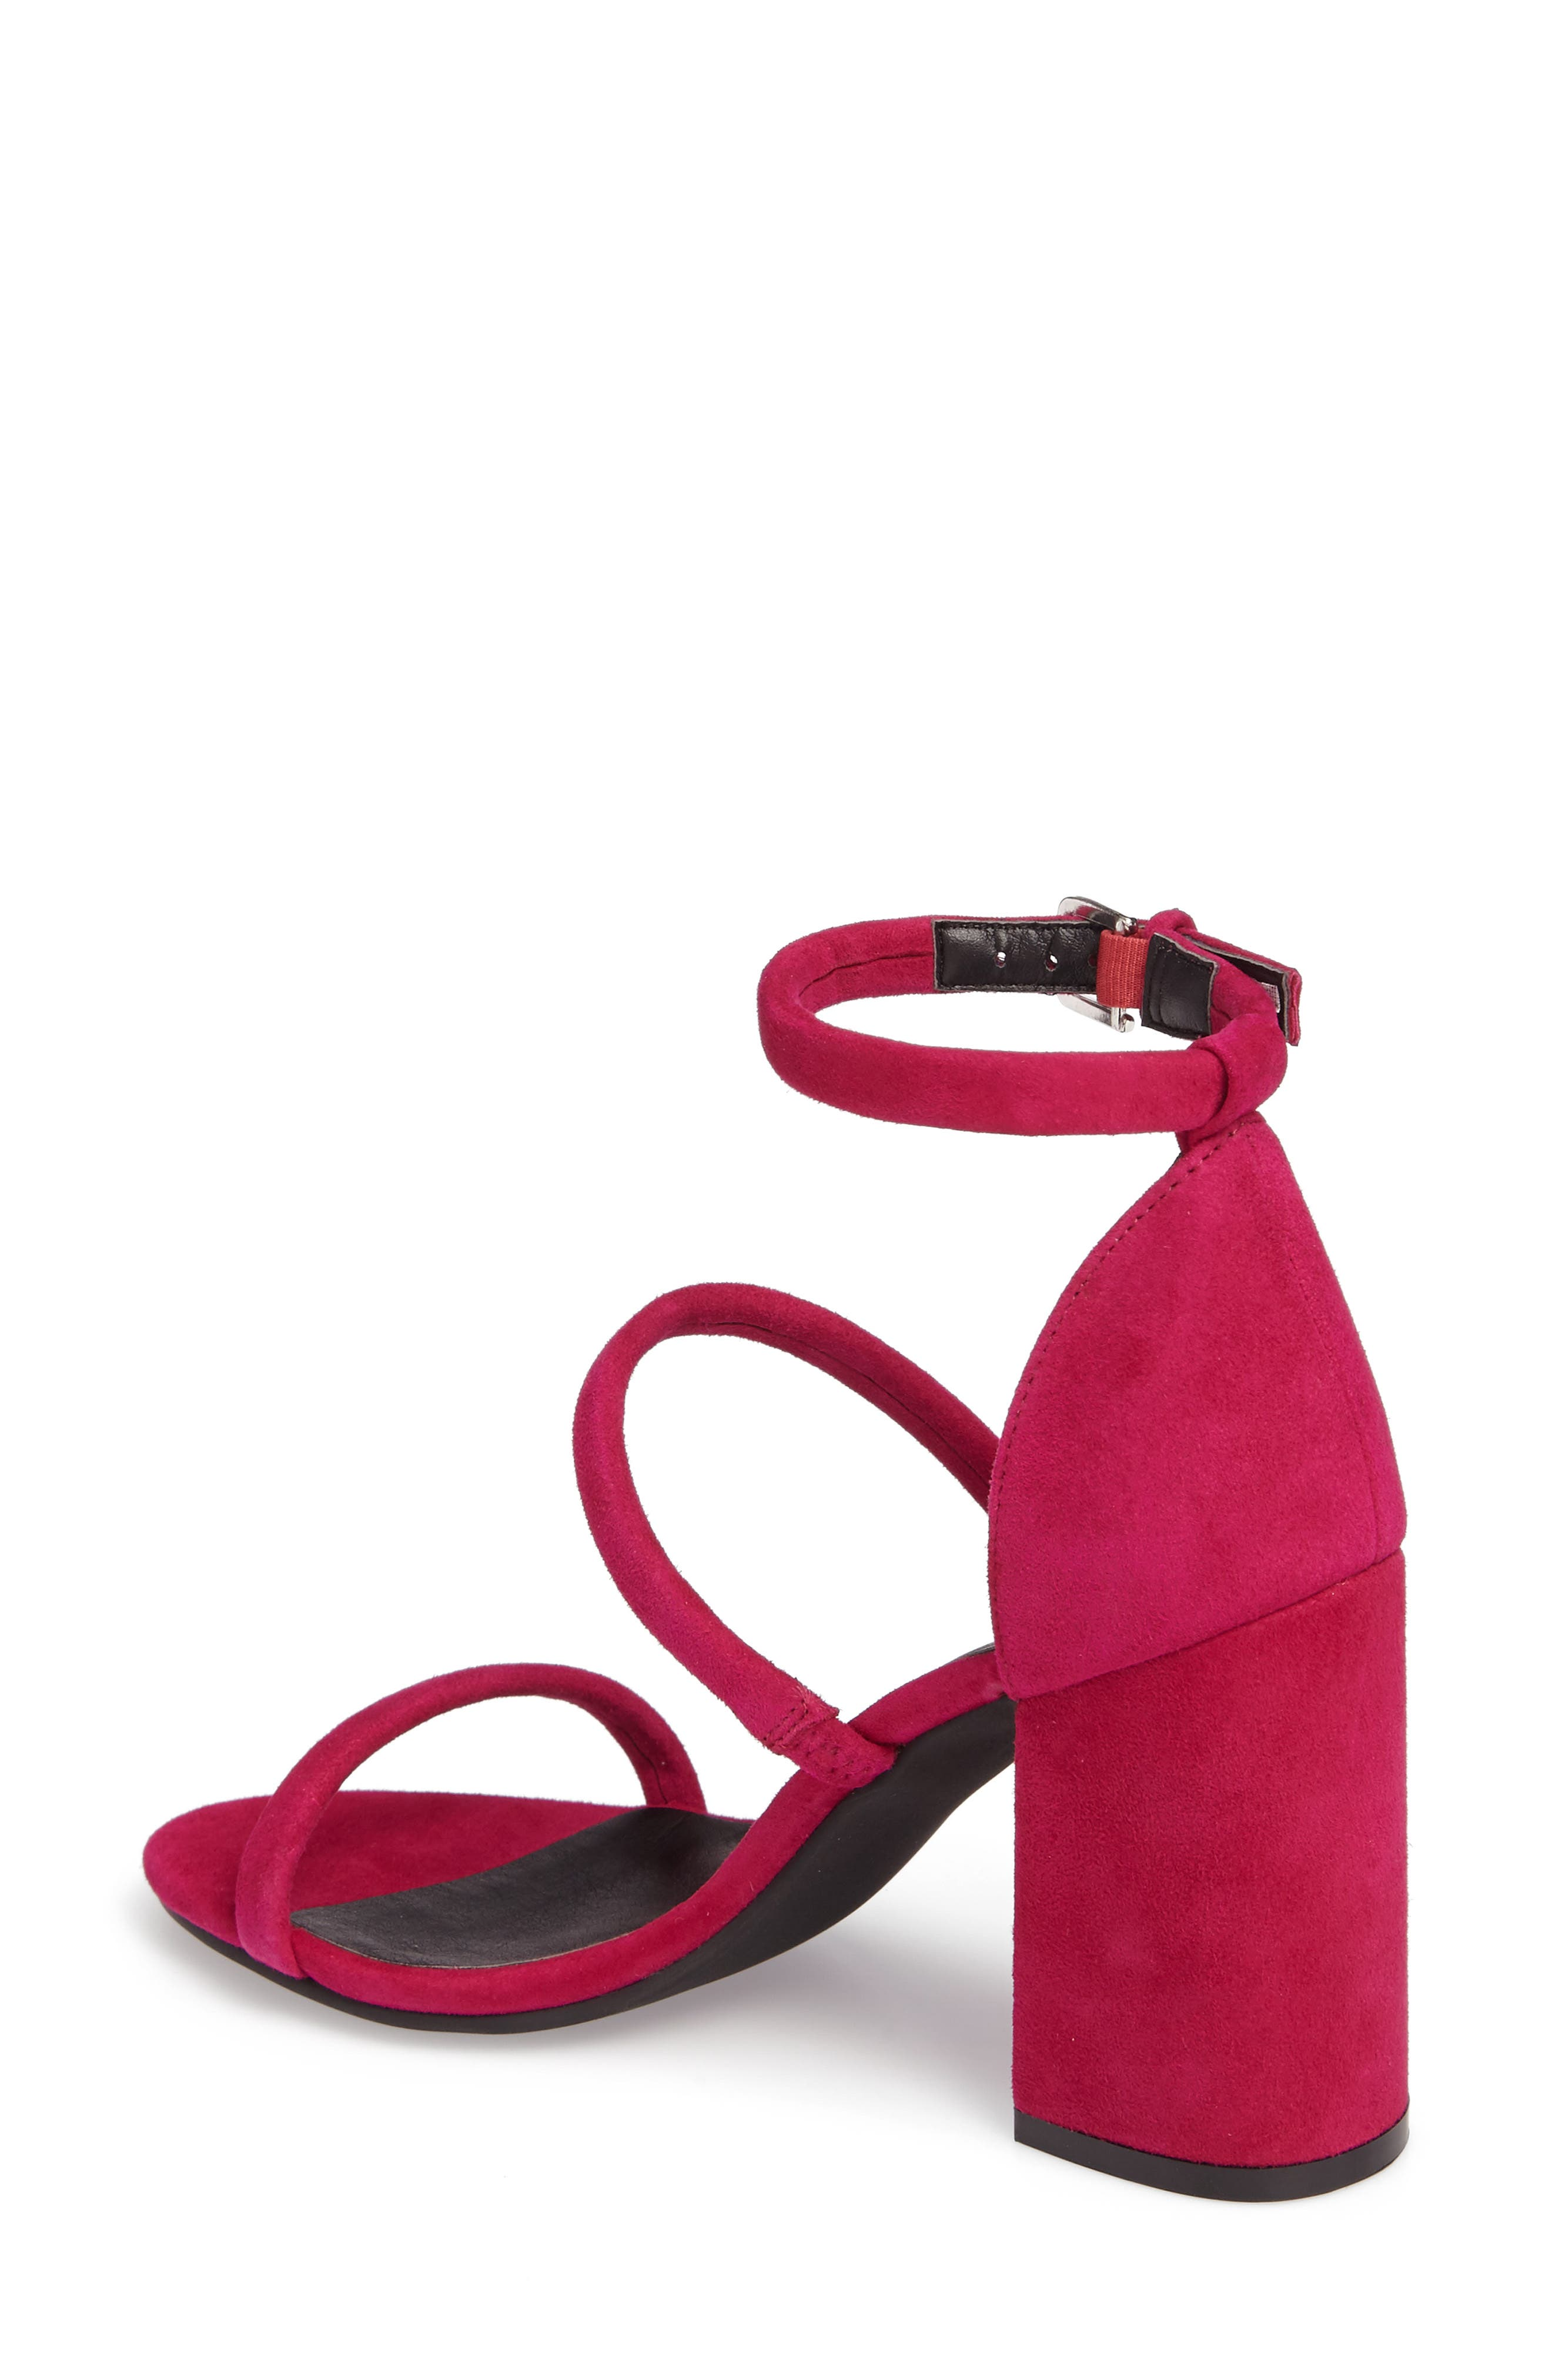 Carly Strappy Sandal,                             Alternate thumbnail 2, color,                             Fuschia Suede